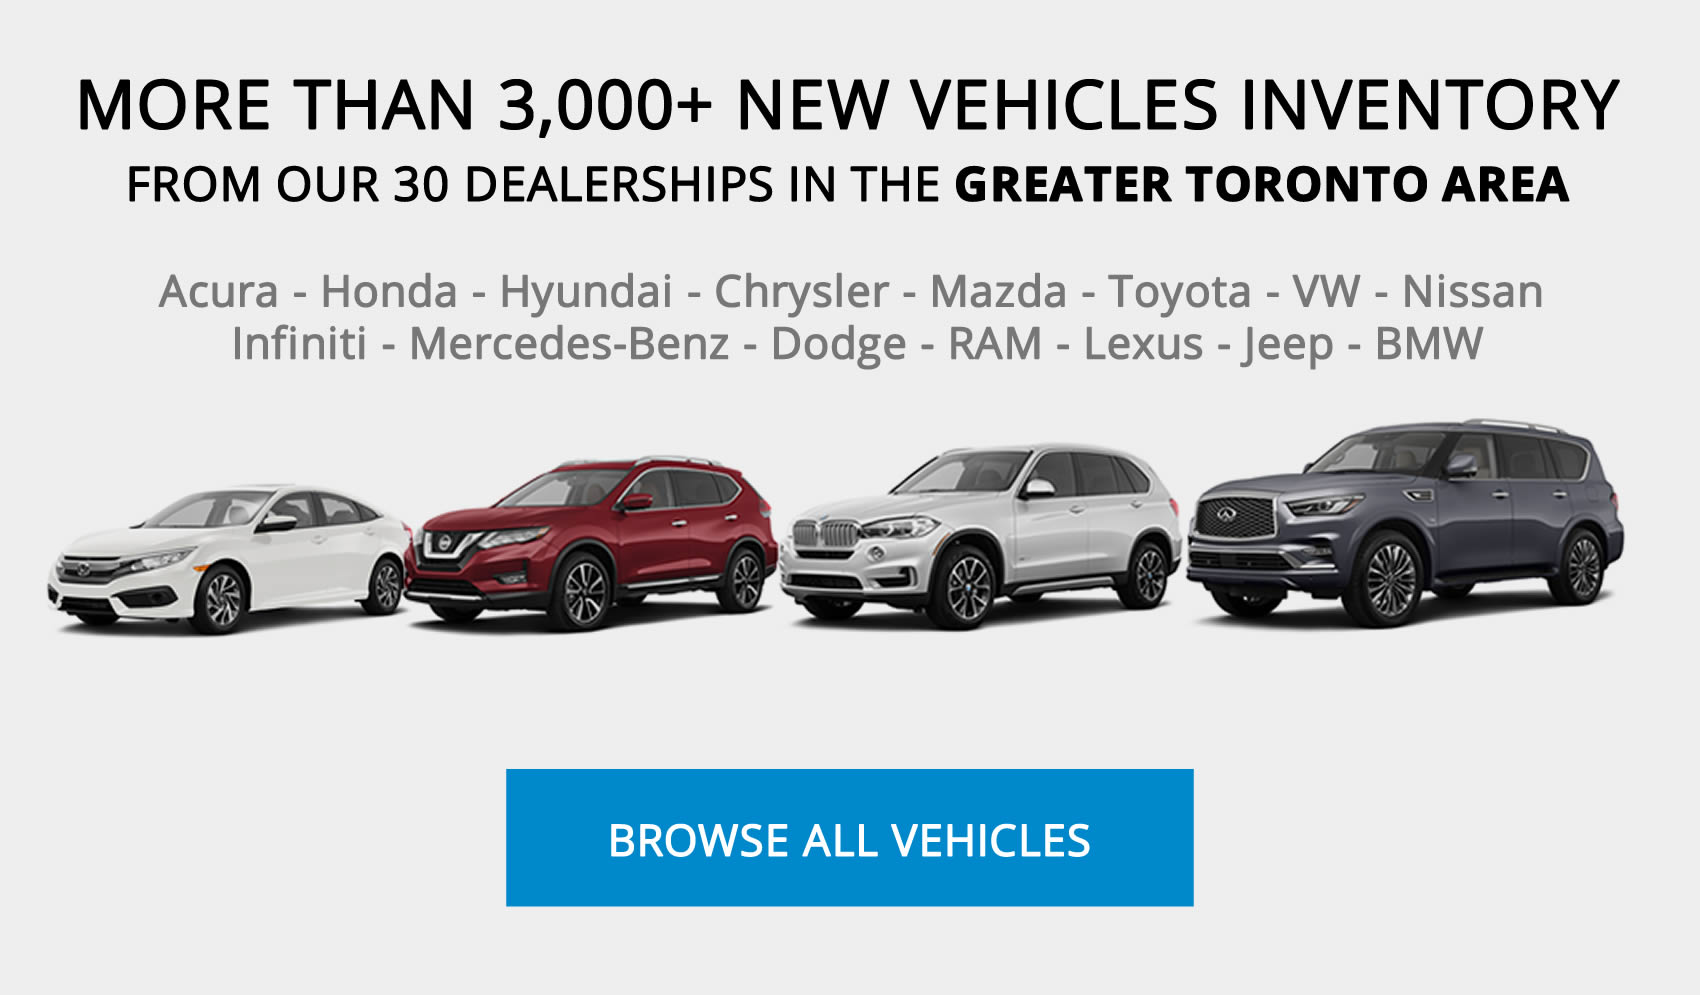 Toronto Area Best Car Deals: MORE THAN 3,000+ NEW VEHICLES INVENTORY FROM OUR 30 DEALERSHIPS IN THE GREATER TORONTO AREA